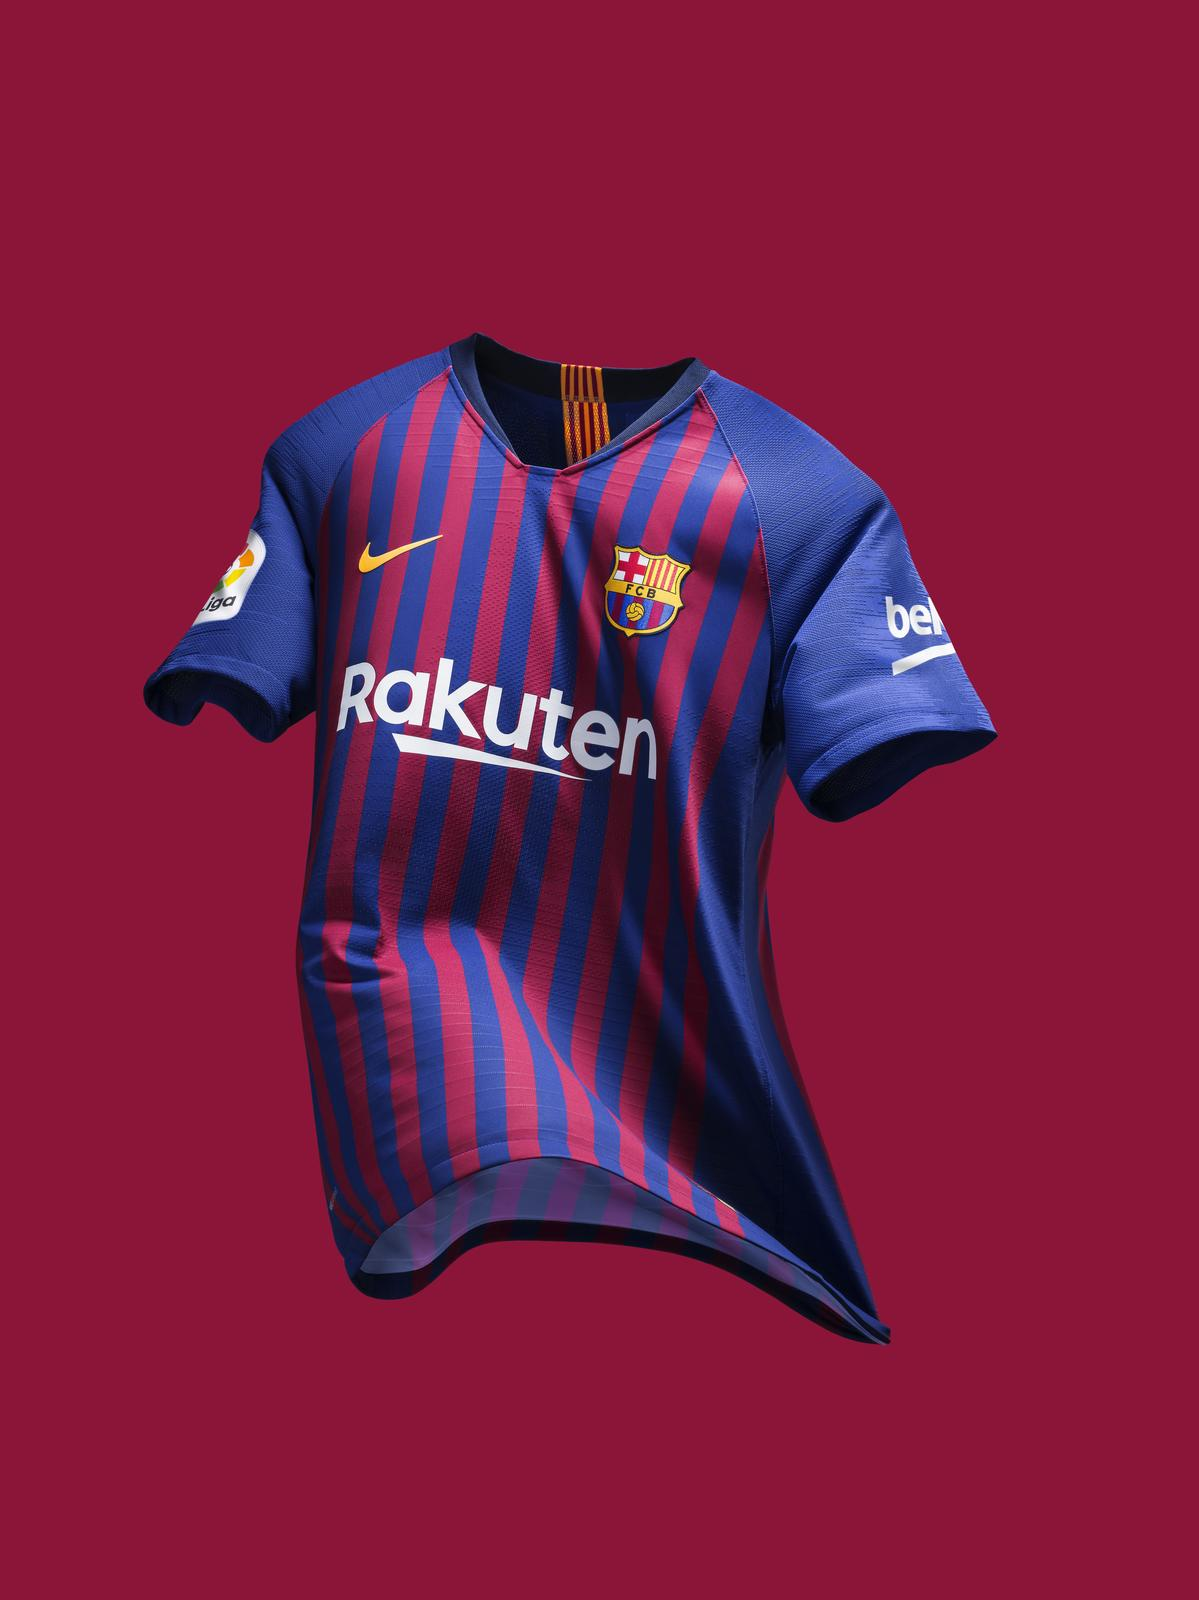 timeless design db7d4 978b2 FC Barcelona's 2018-19 Home Kit Unites the City's 10 ...